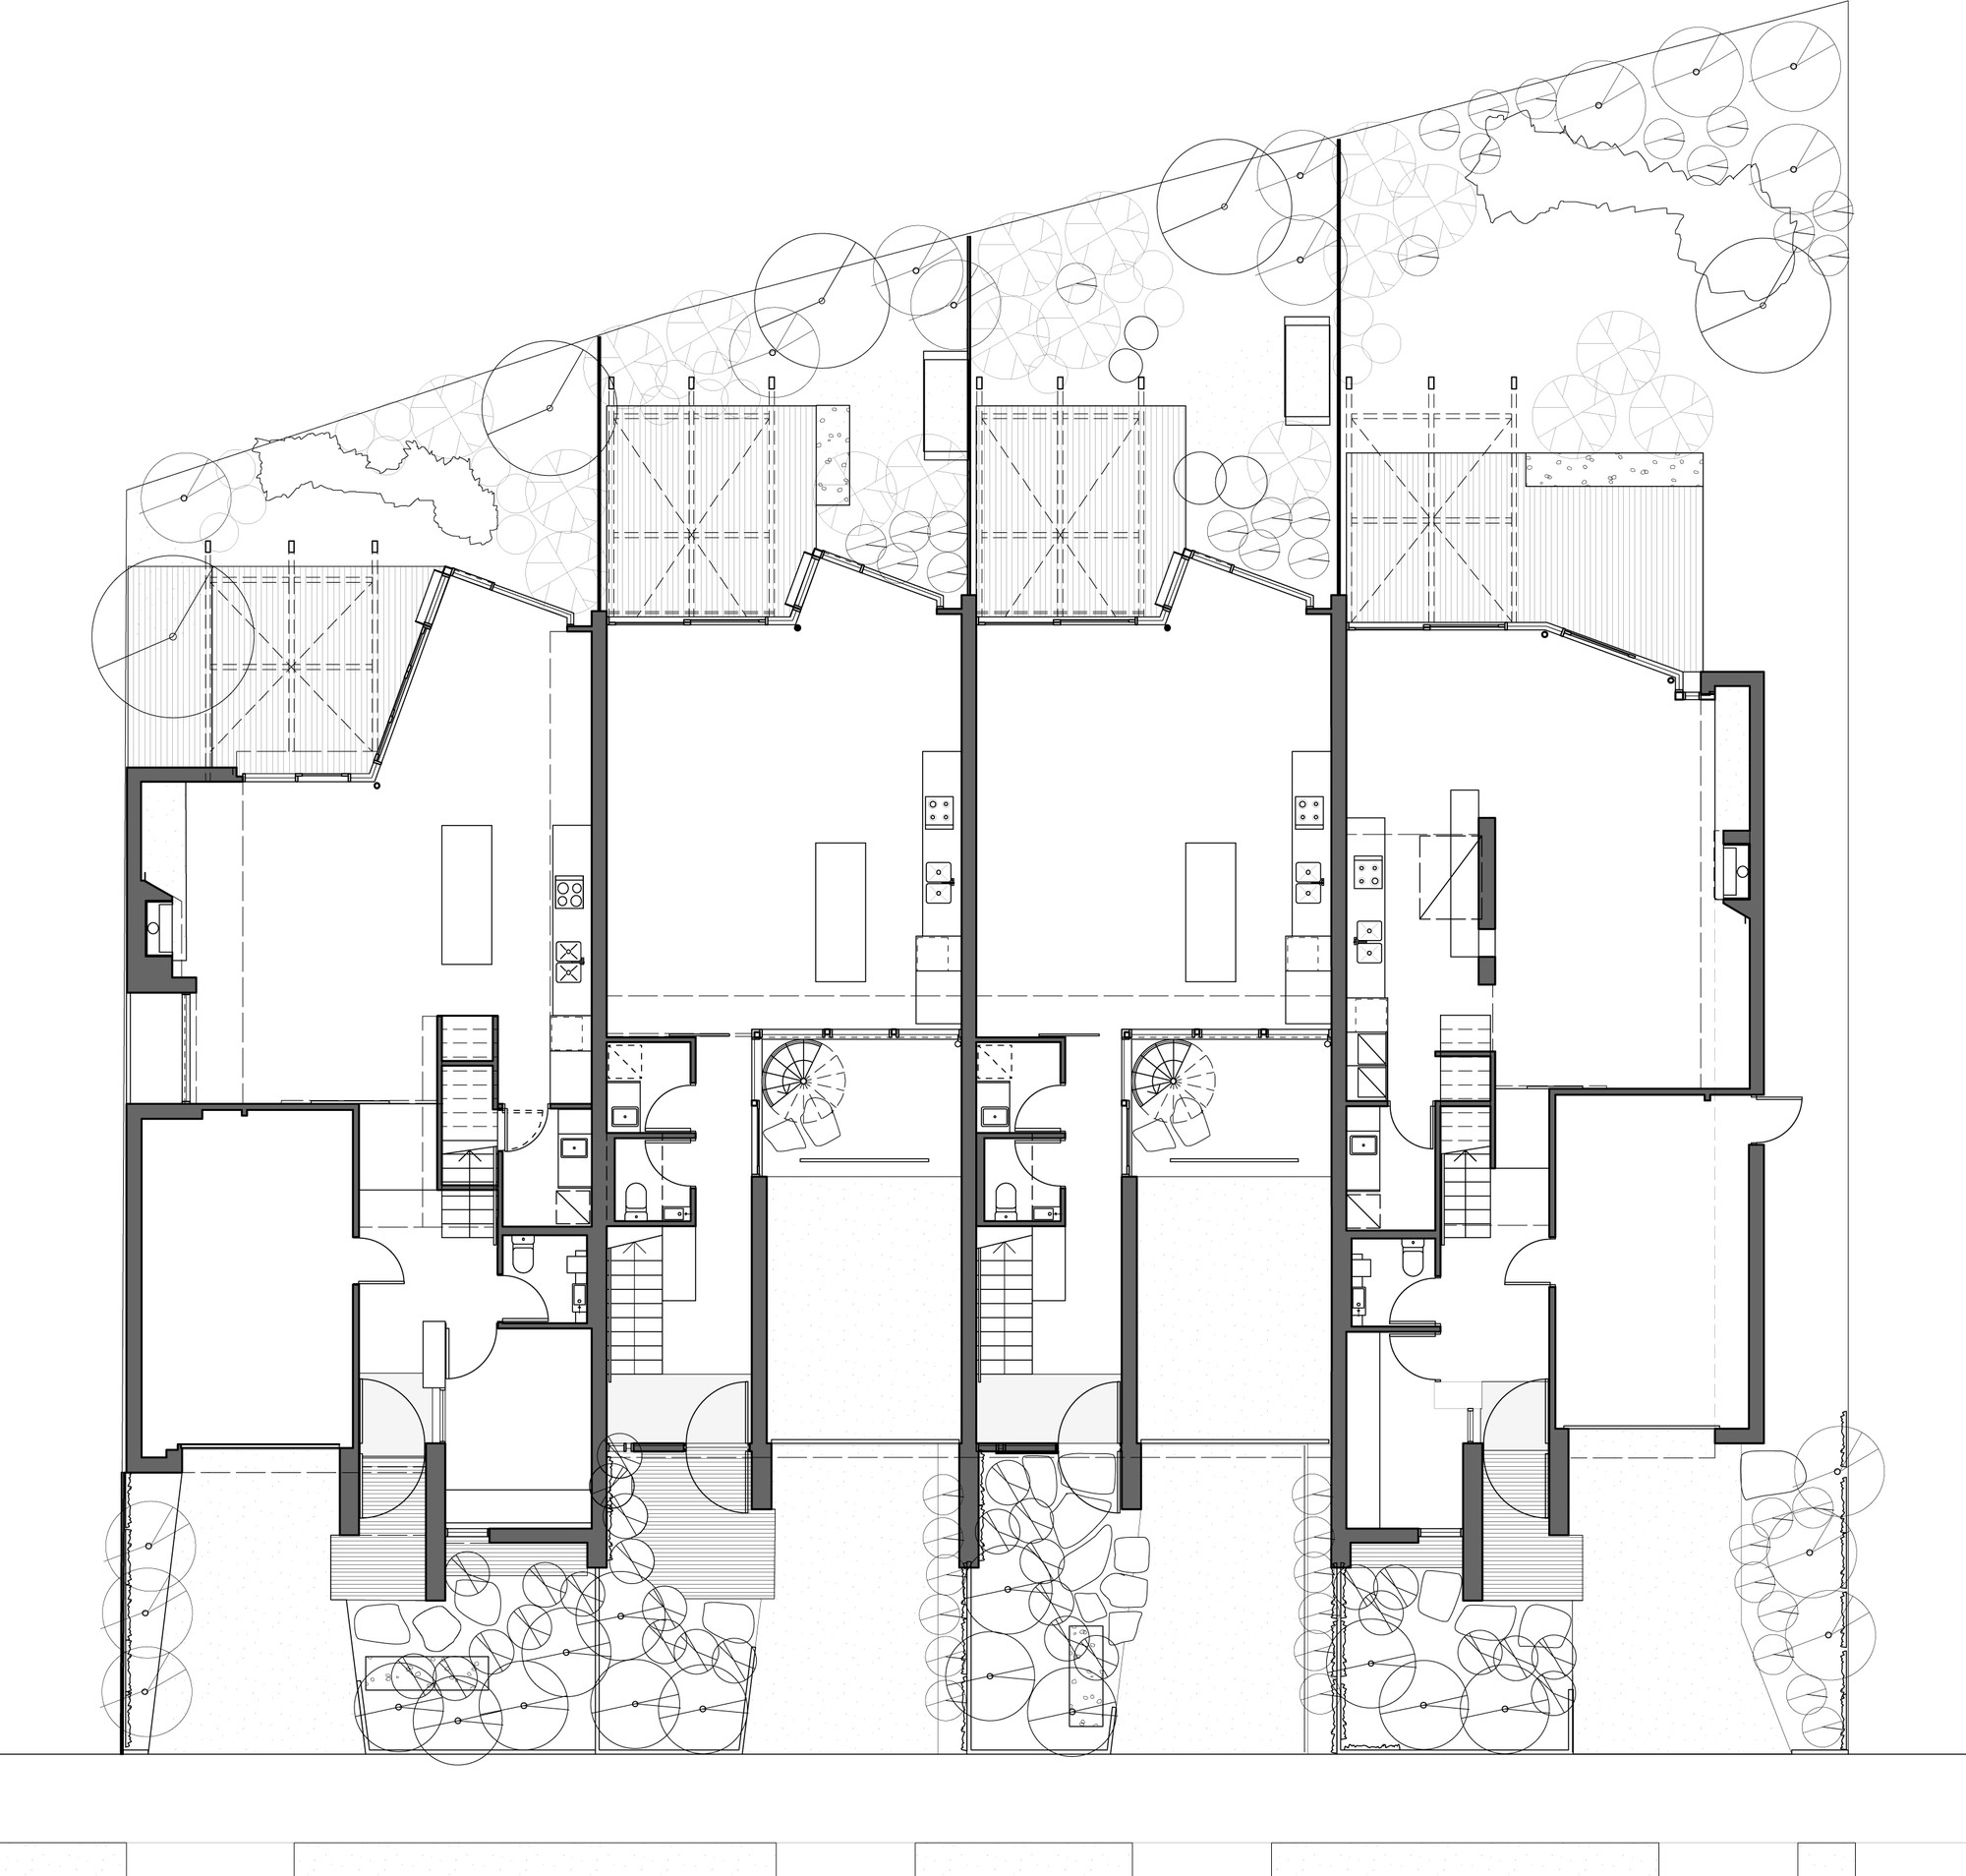 Gallery of elwood townhouses mcallister alcock for Large townhouse floor plans